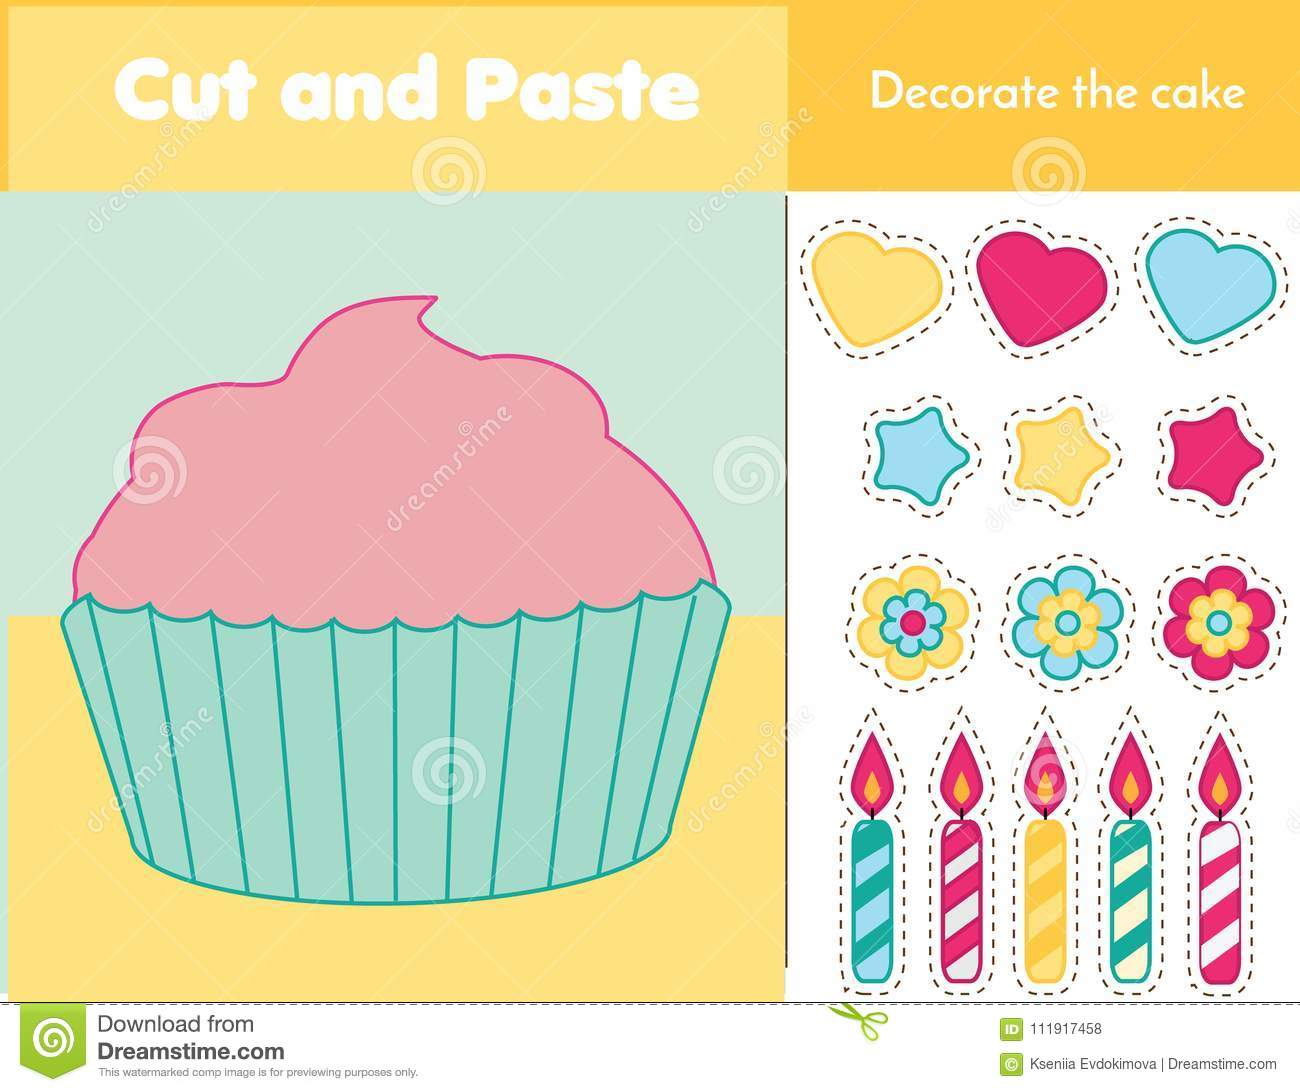 Cut And Paste Children Educational Game Paper Cutting Activity Decorate A Cupcake With Glue